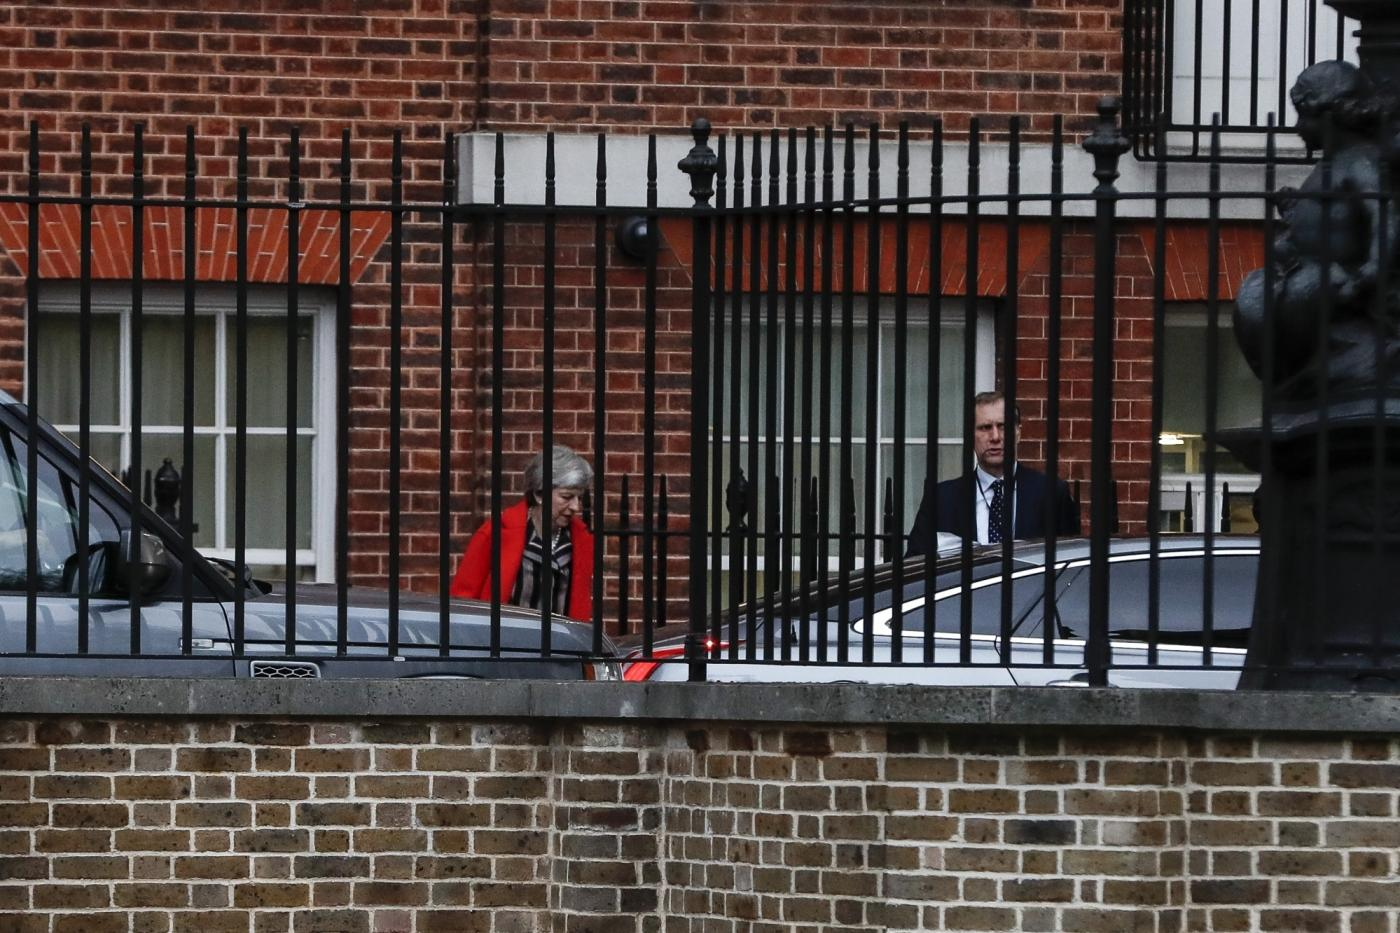 LONDON, Nov. 26, 2018 (Xinhua) -- British Prime Minister Theresa May (L) leaves 10 Downing Street following a cabinet meeting in London, Britain, on Nov. 26, 2018. British parliament vote on Brexit deal will be held on Dec. 11, Theresa May confirmed on Monday. (Xinhua/Han Yan/IANS) by .